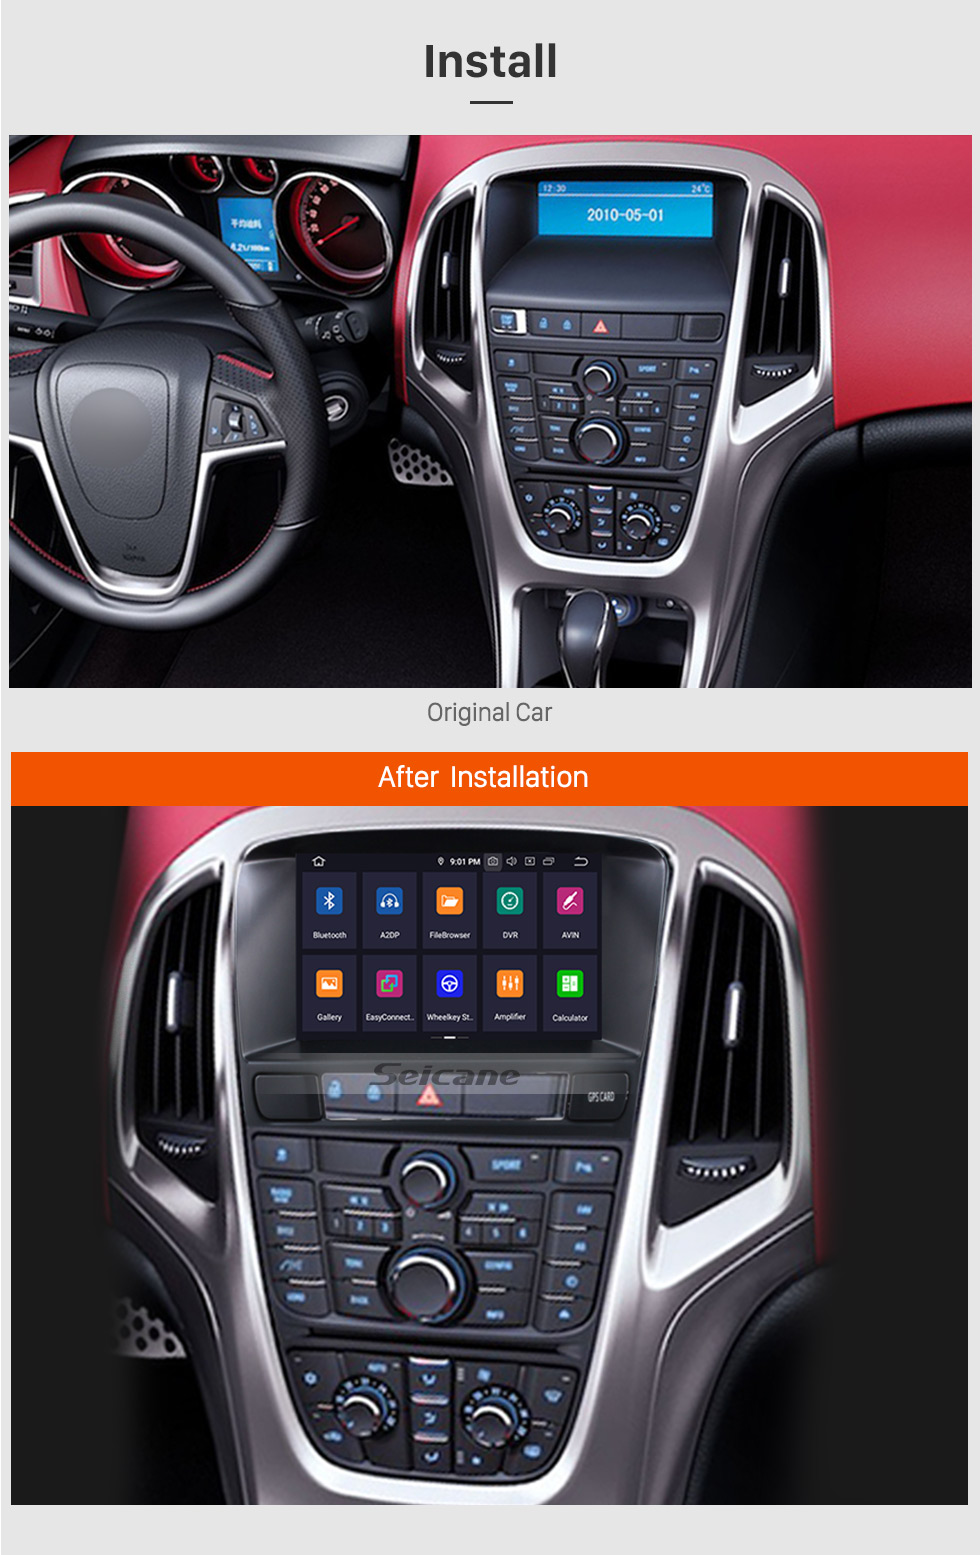 Seicane 7 inch HD Touchscreen Android 9.0 CD DVD Radio GPS Navigation Head unit for 2010 2011 2012 2013 Opel Astra J Support WIFI Bluetooth Music Audio system Aux 1080P Backup Camera